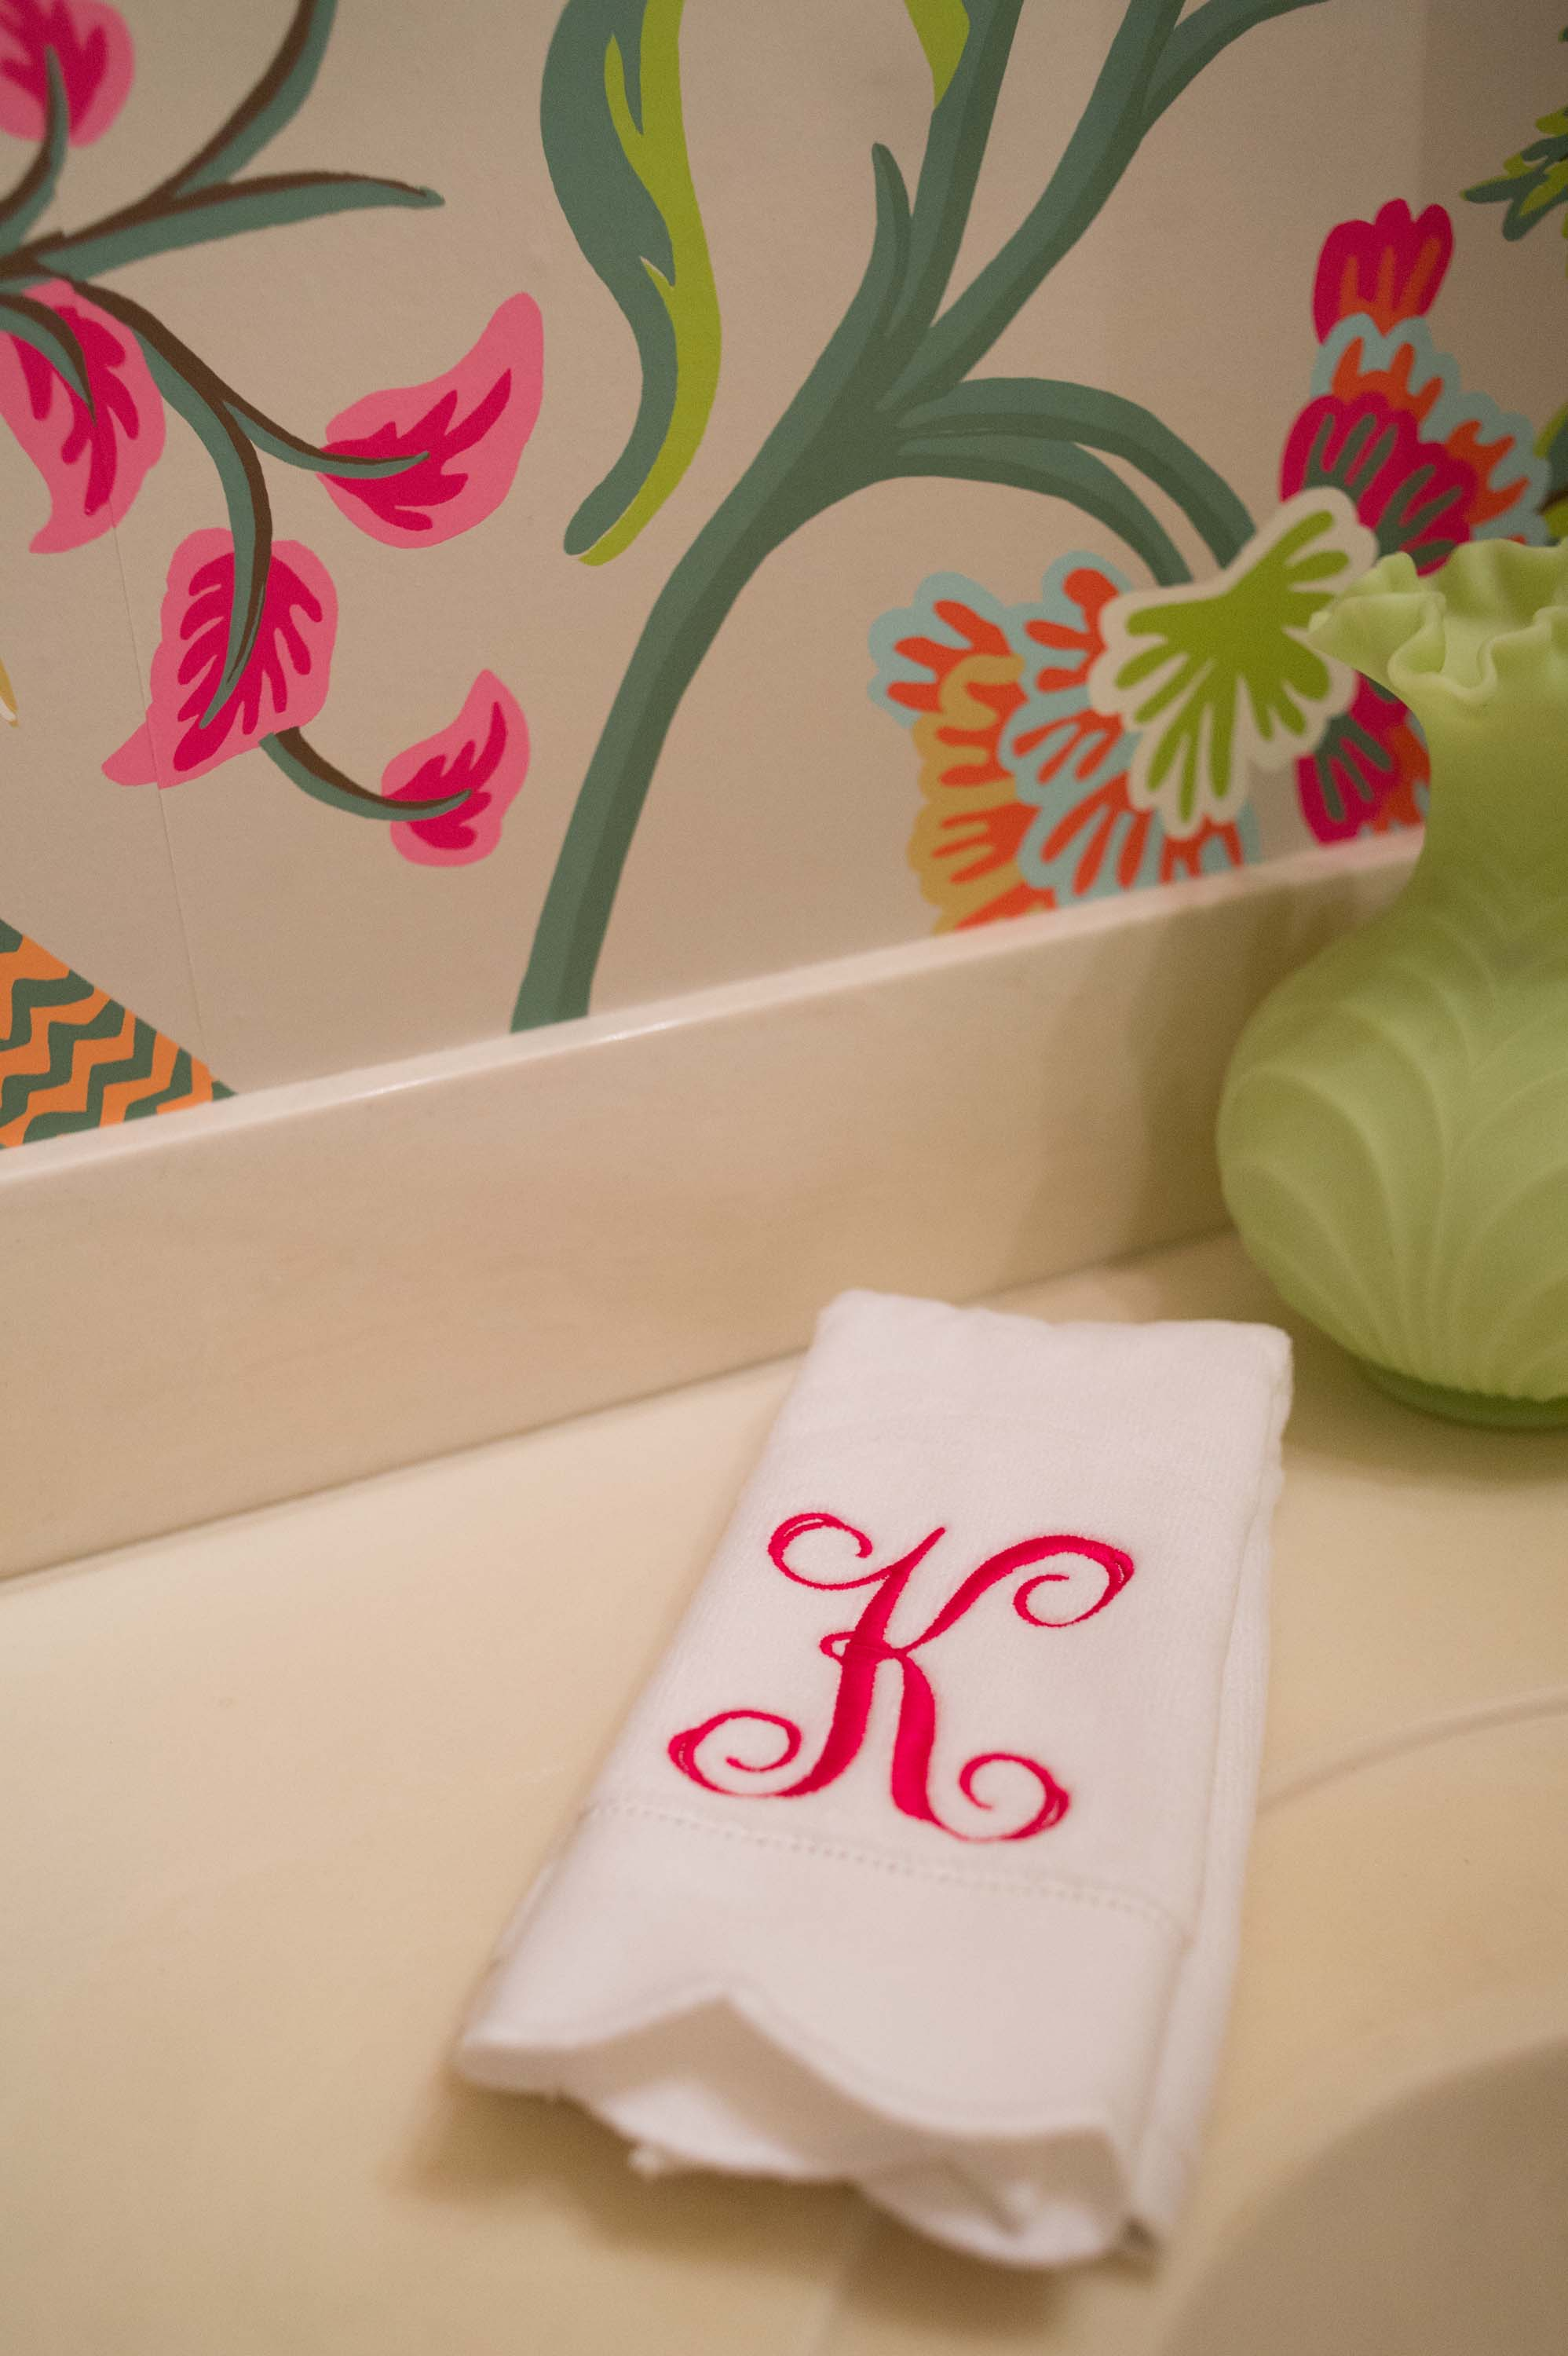 Thibaut wallpaper with monogrammed towel.